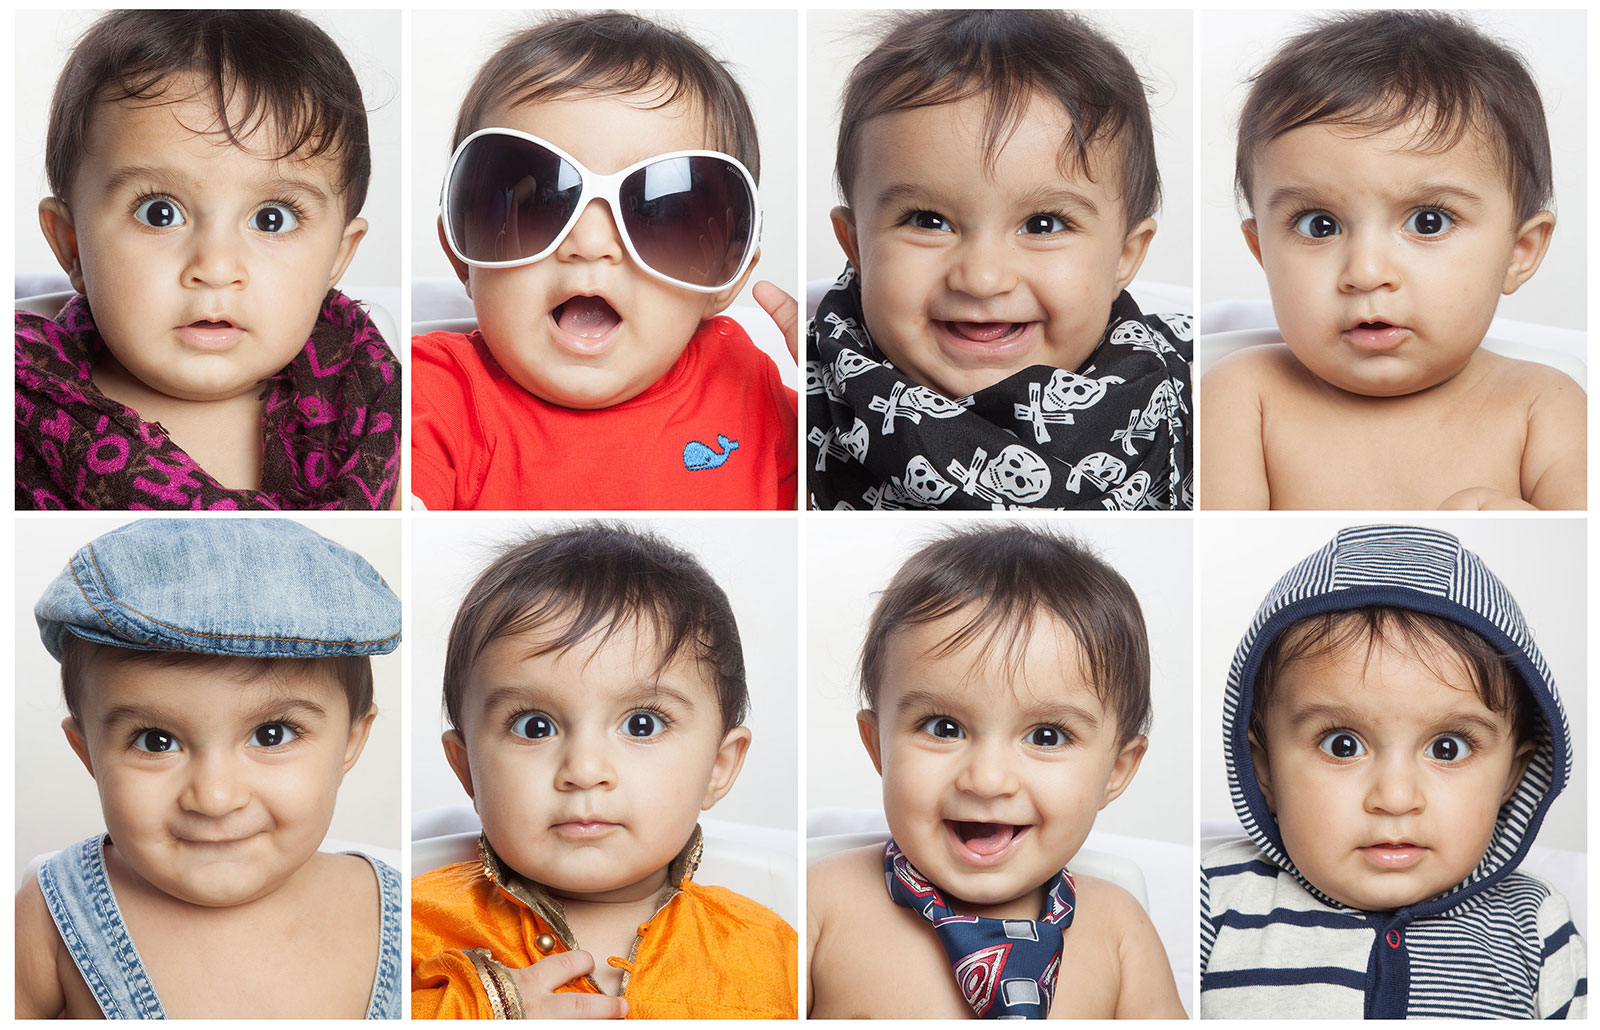 Collage of baby potraits by shailraj brahmbhatt